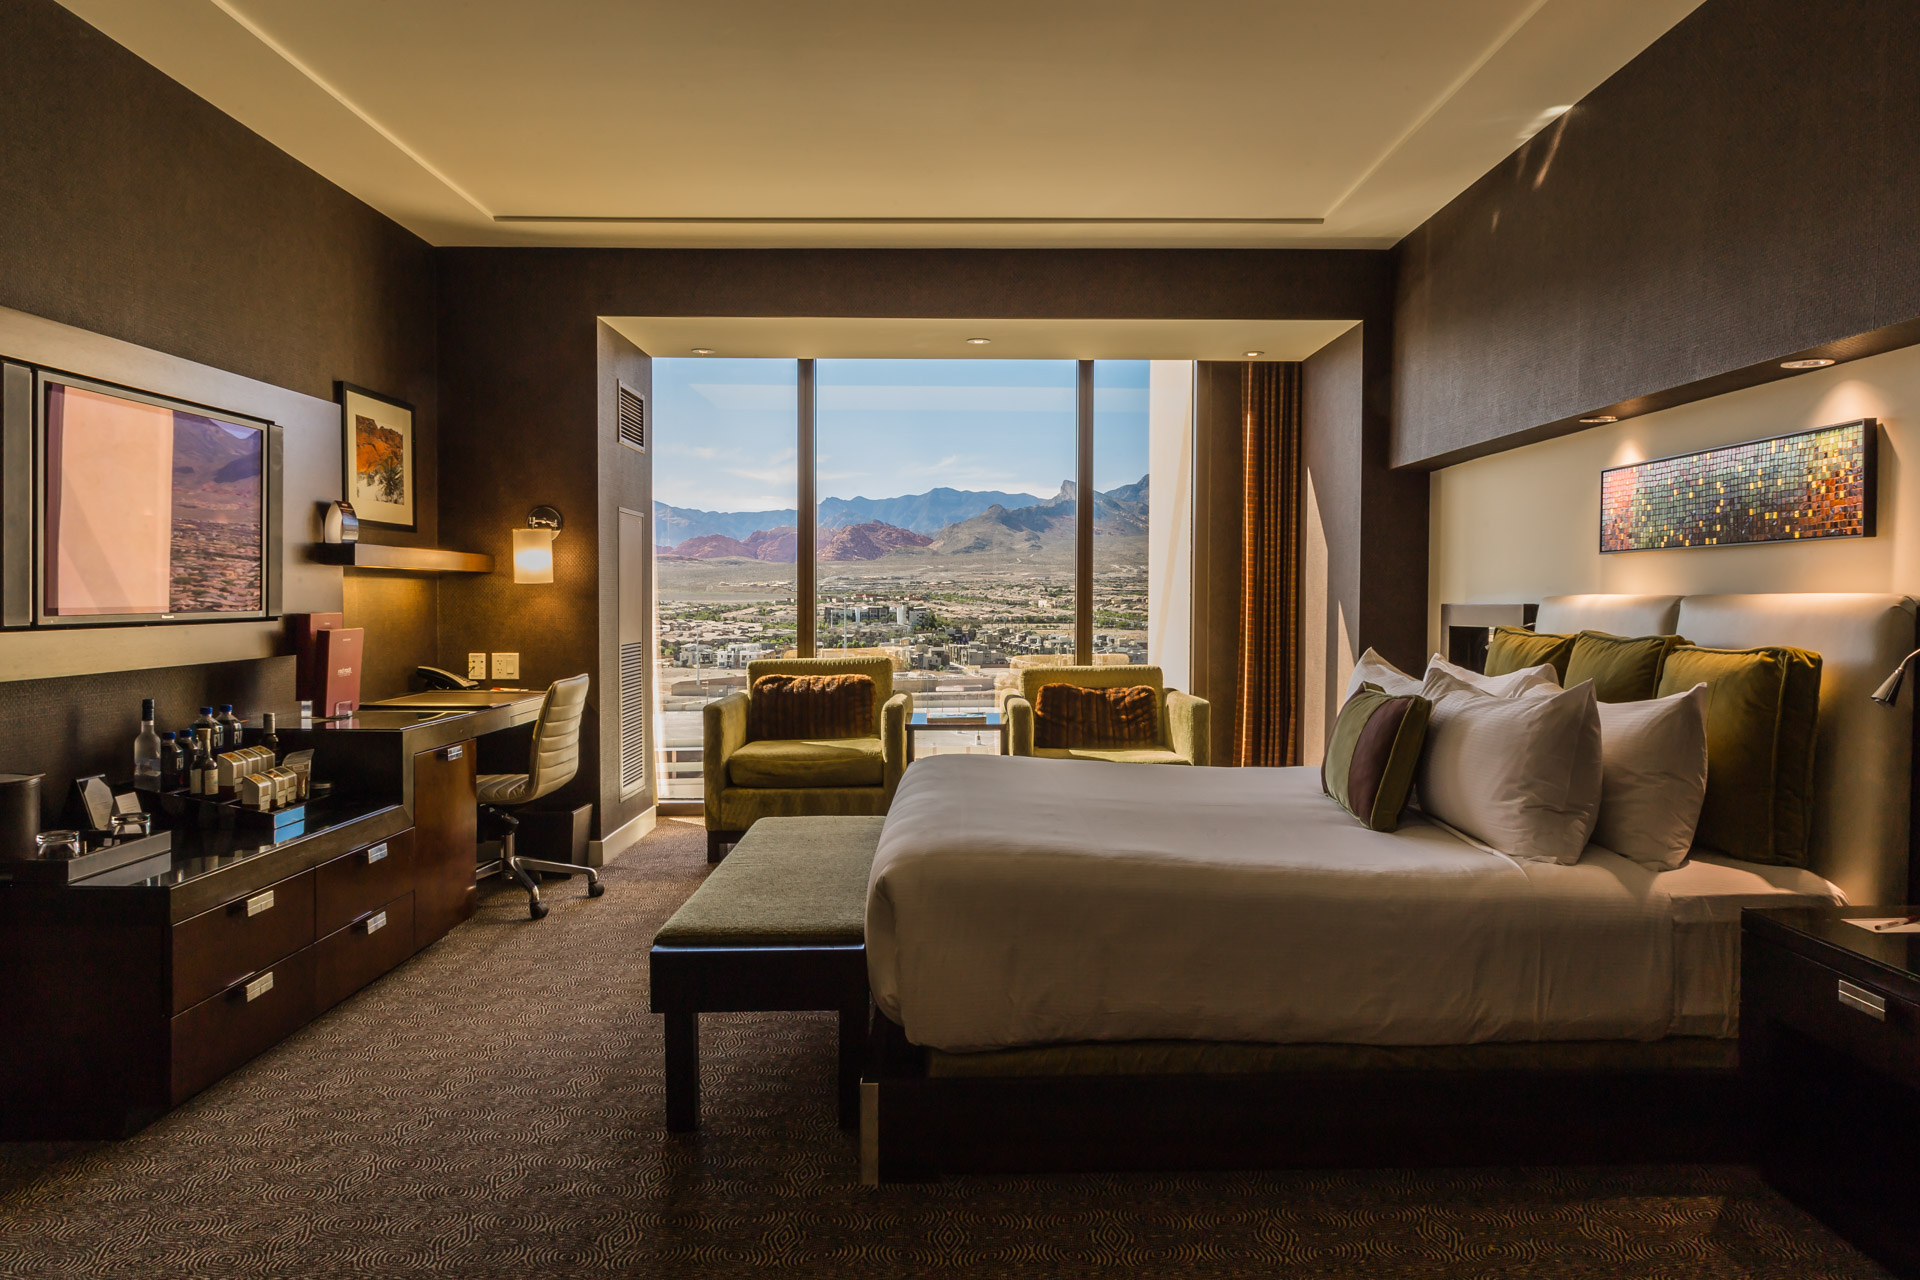 Canyon Views At The Red Rock Resort In Las Vegas